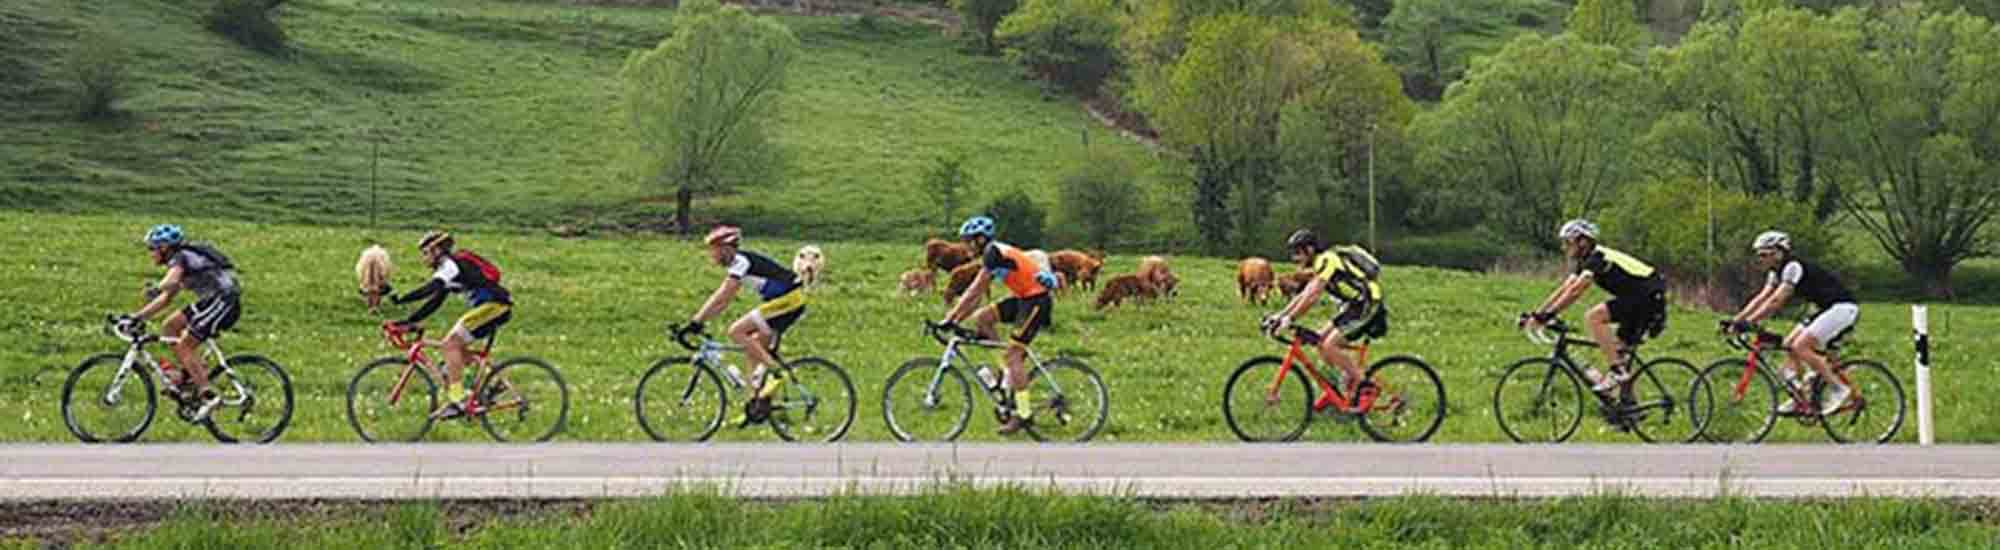 Bespoke Cycling - Pyrenees Weekend - 4/7/19-7/7/19 - £1700